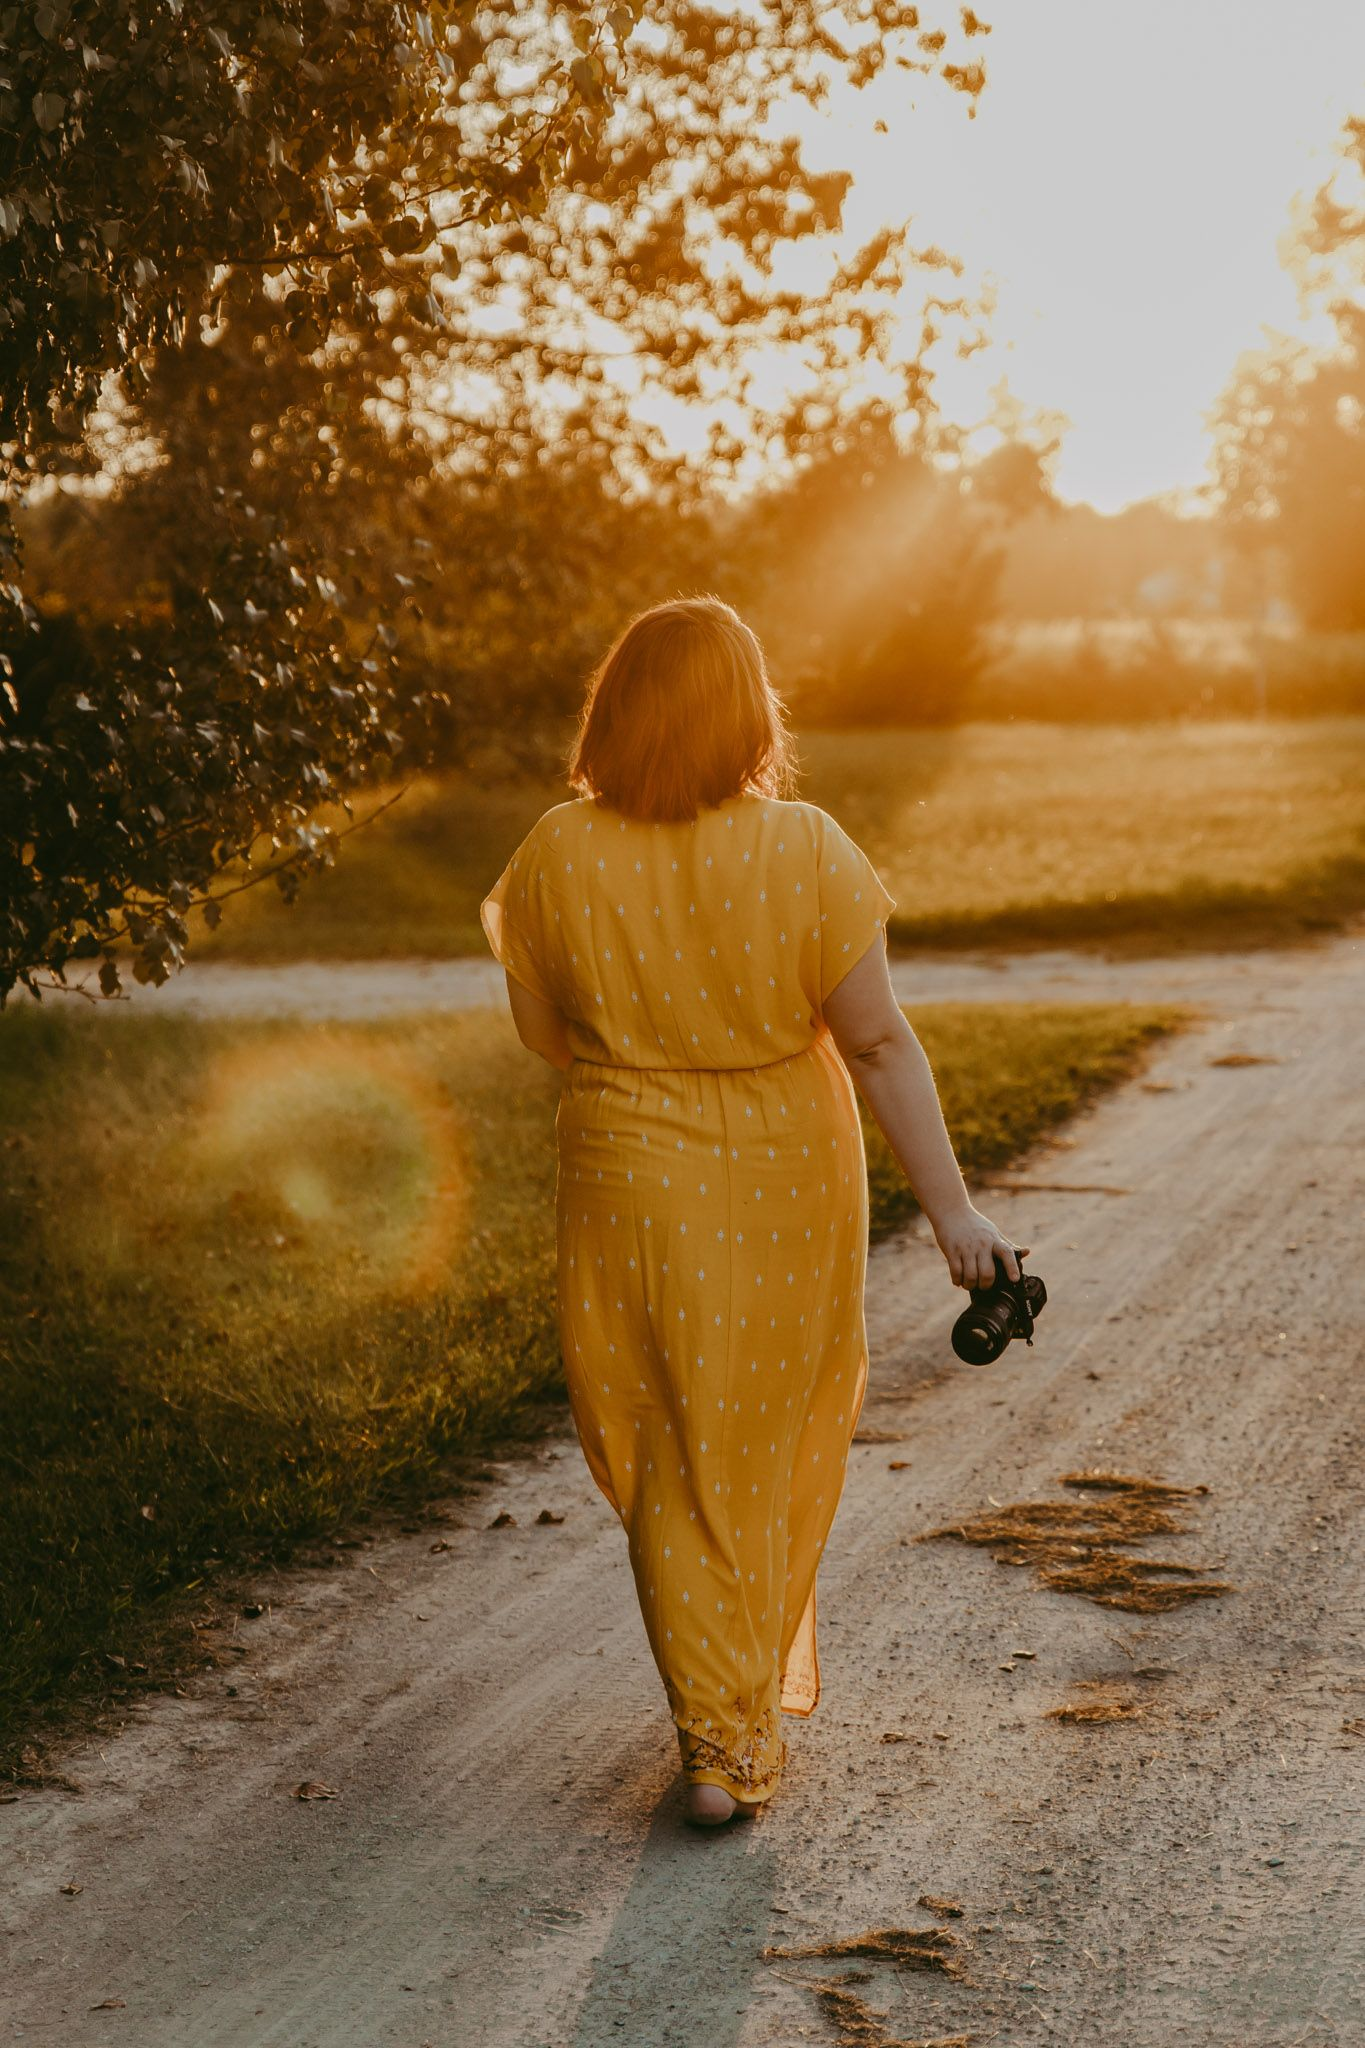 A girl is walking down a dirt path towards the setting sun with her camera in her hand.